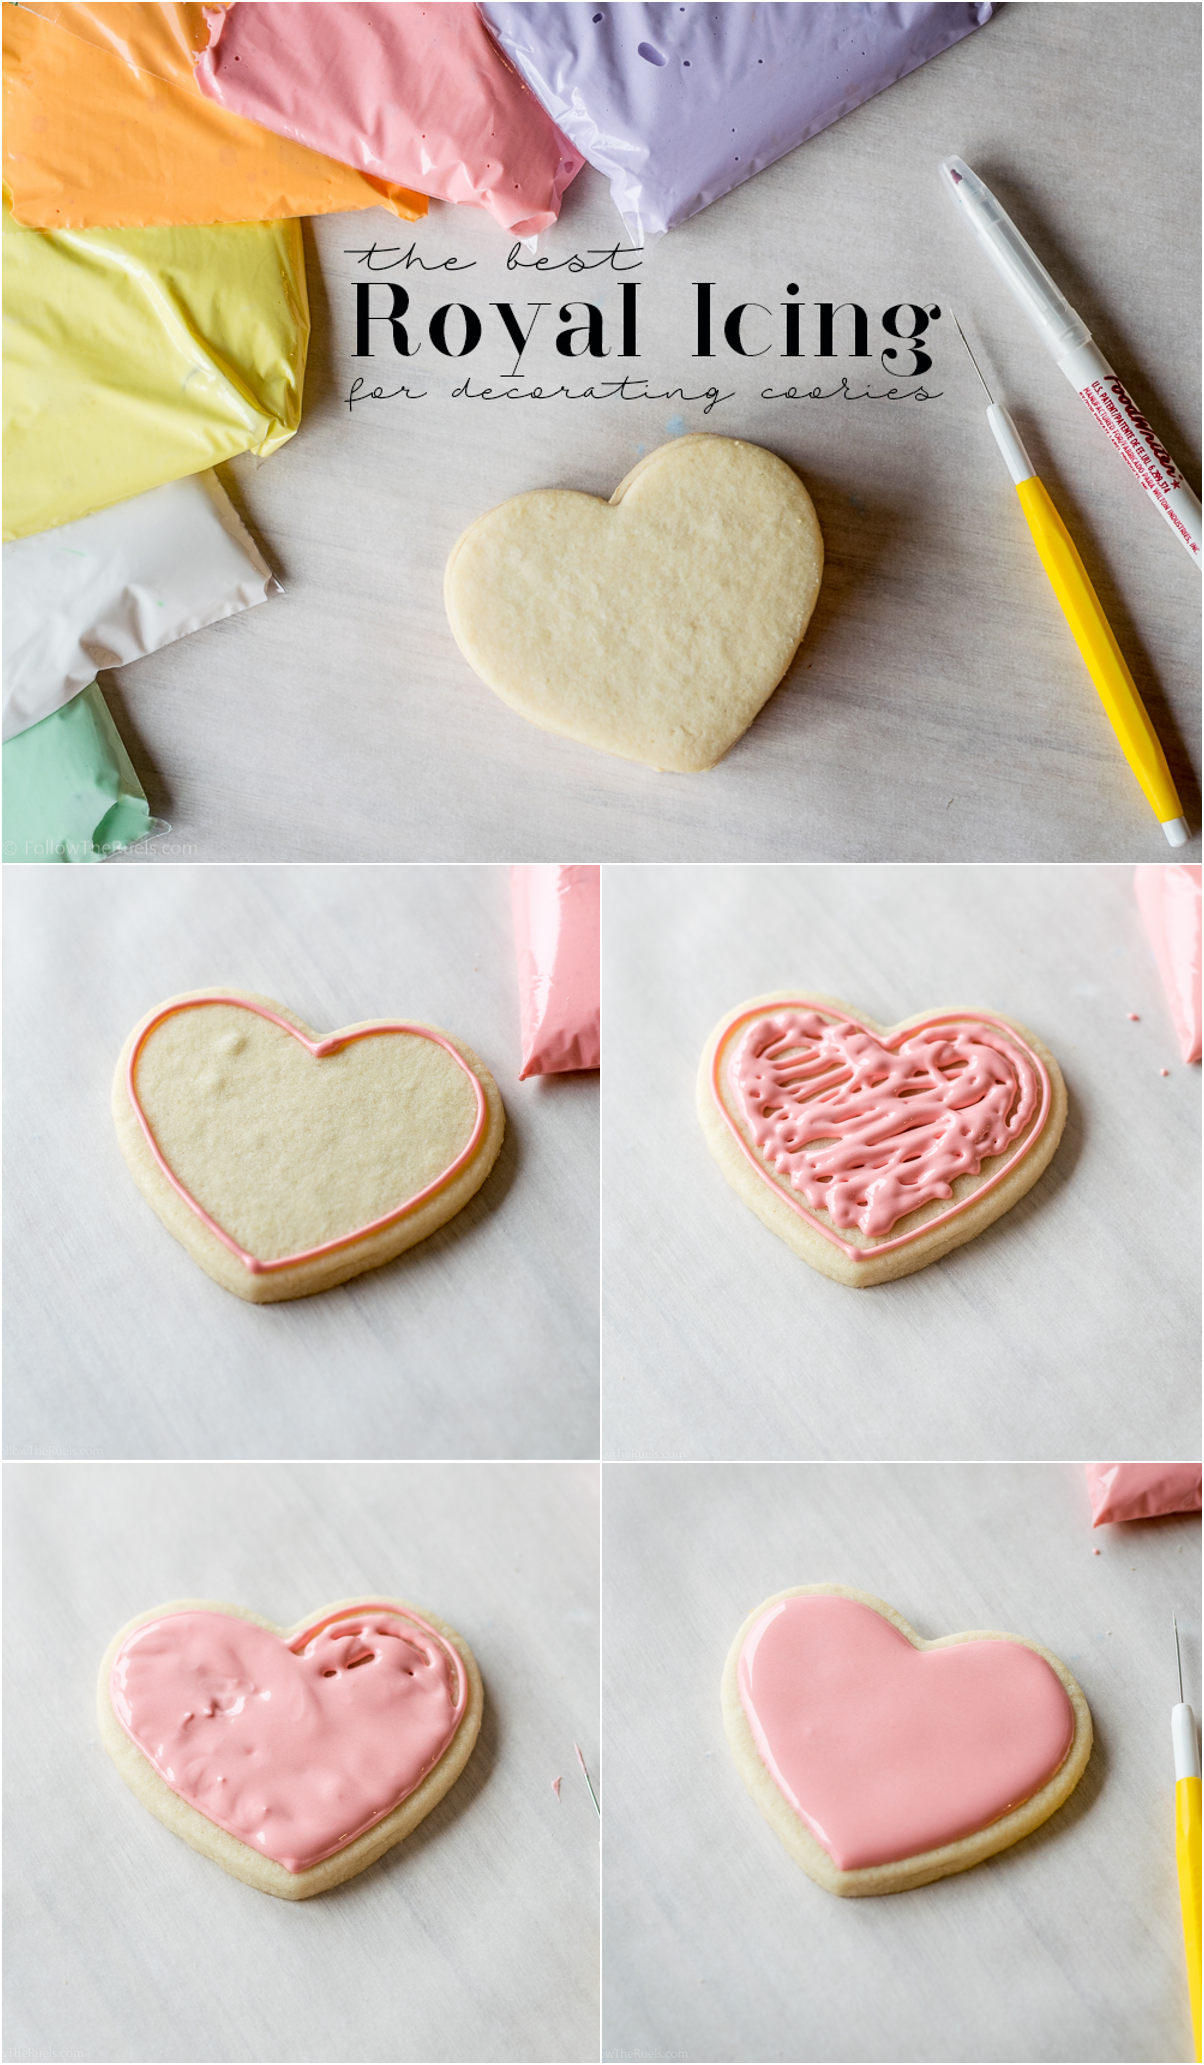 The best royal icing for decorating cookies. | Cookie ...